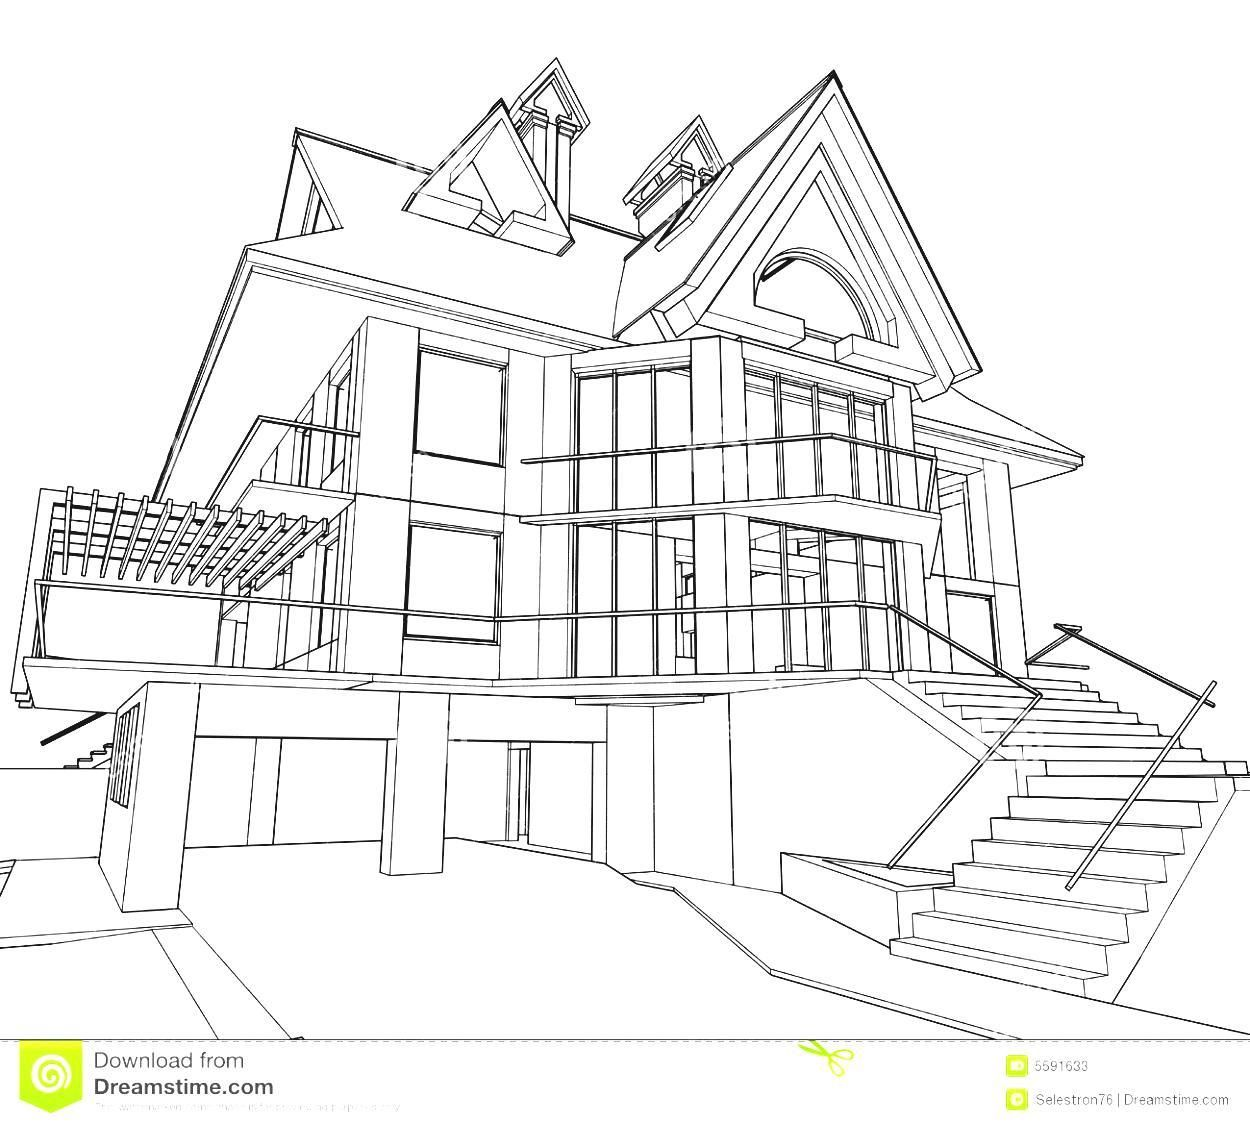 Tree House Perspective Drawing House Design Drawing House Drawing Dream House Drawing